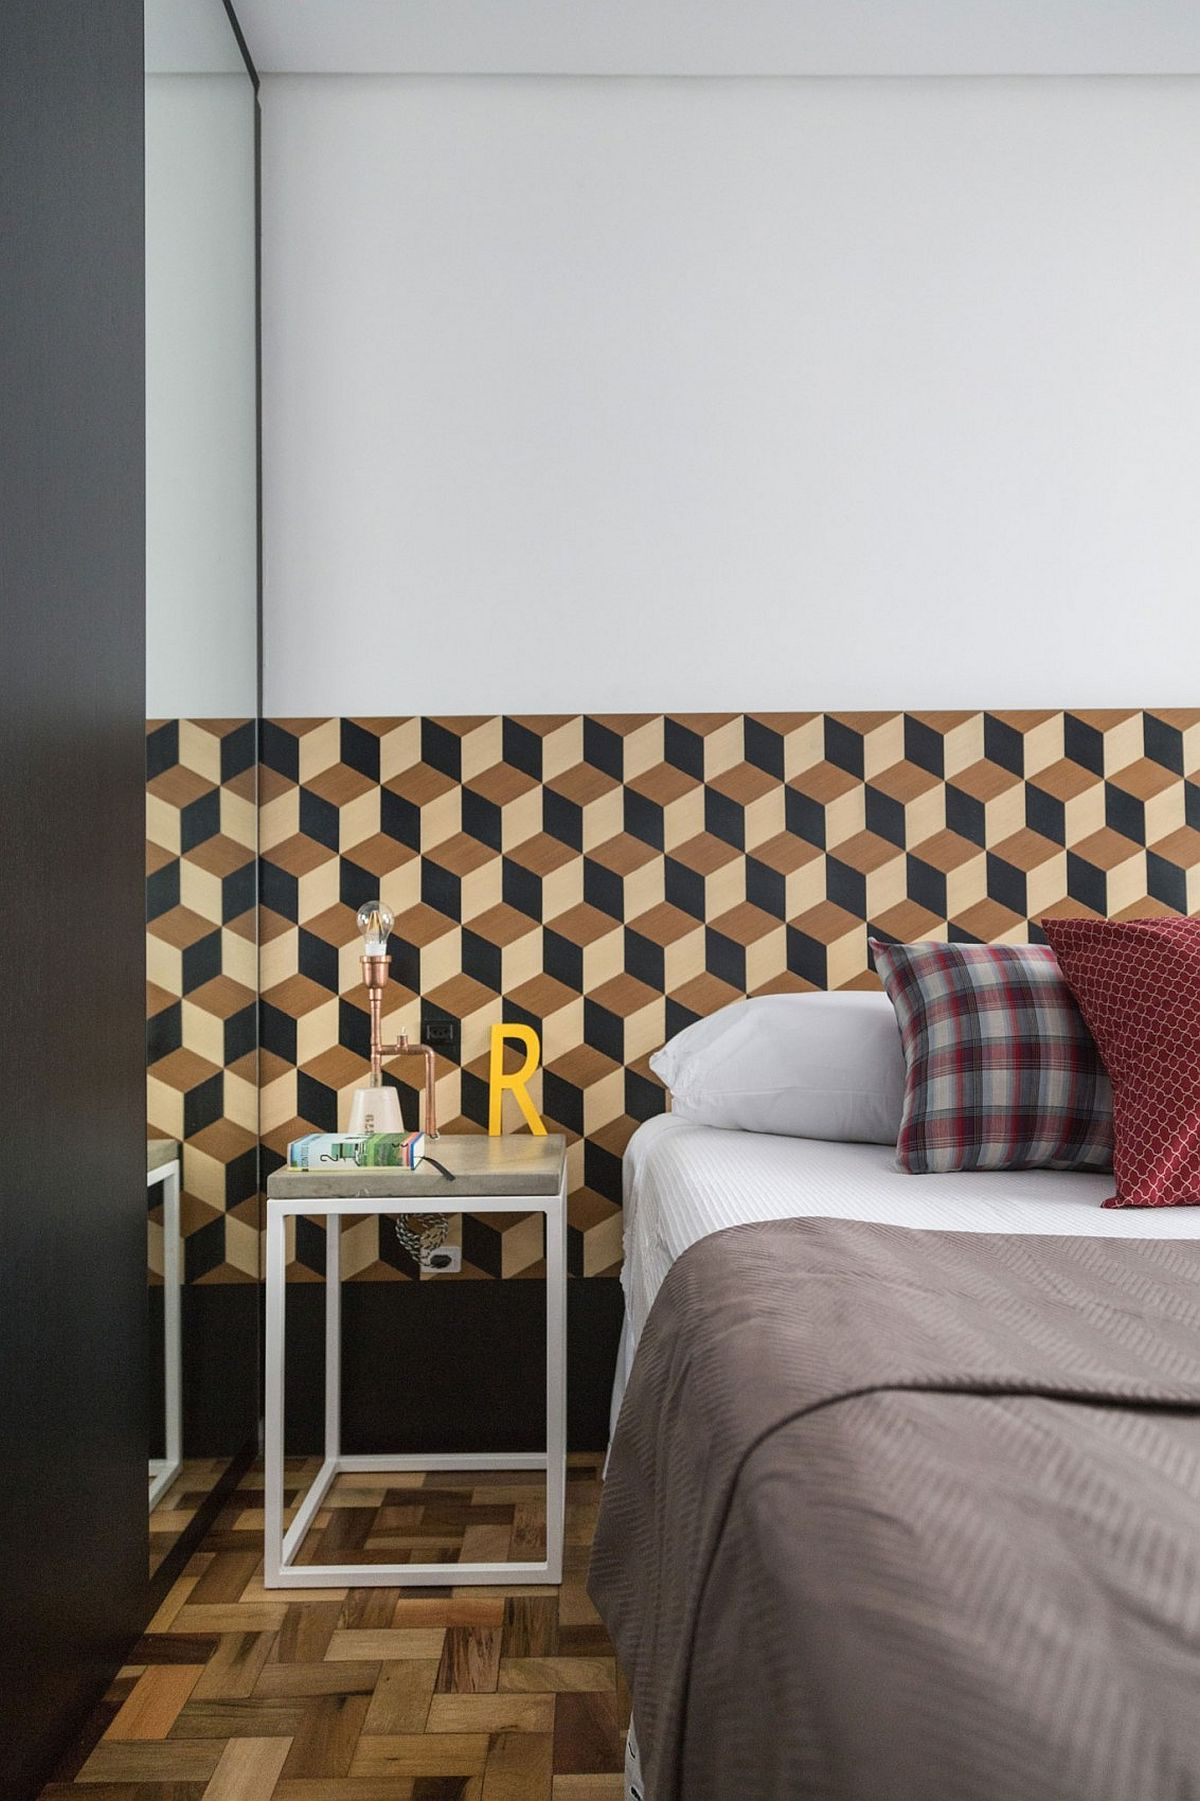 3D-wallpaper-and-smart-decorating-ideas-for-the-tiny-bedroom